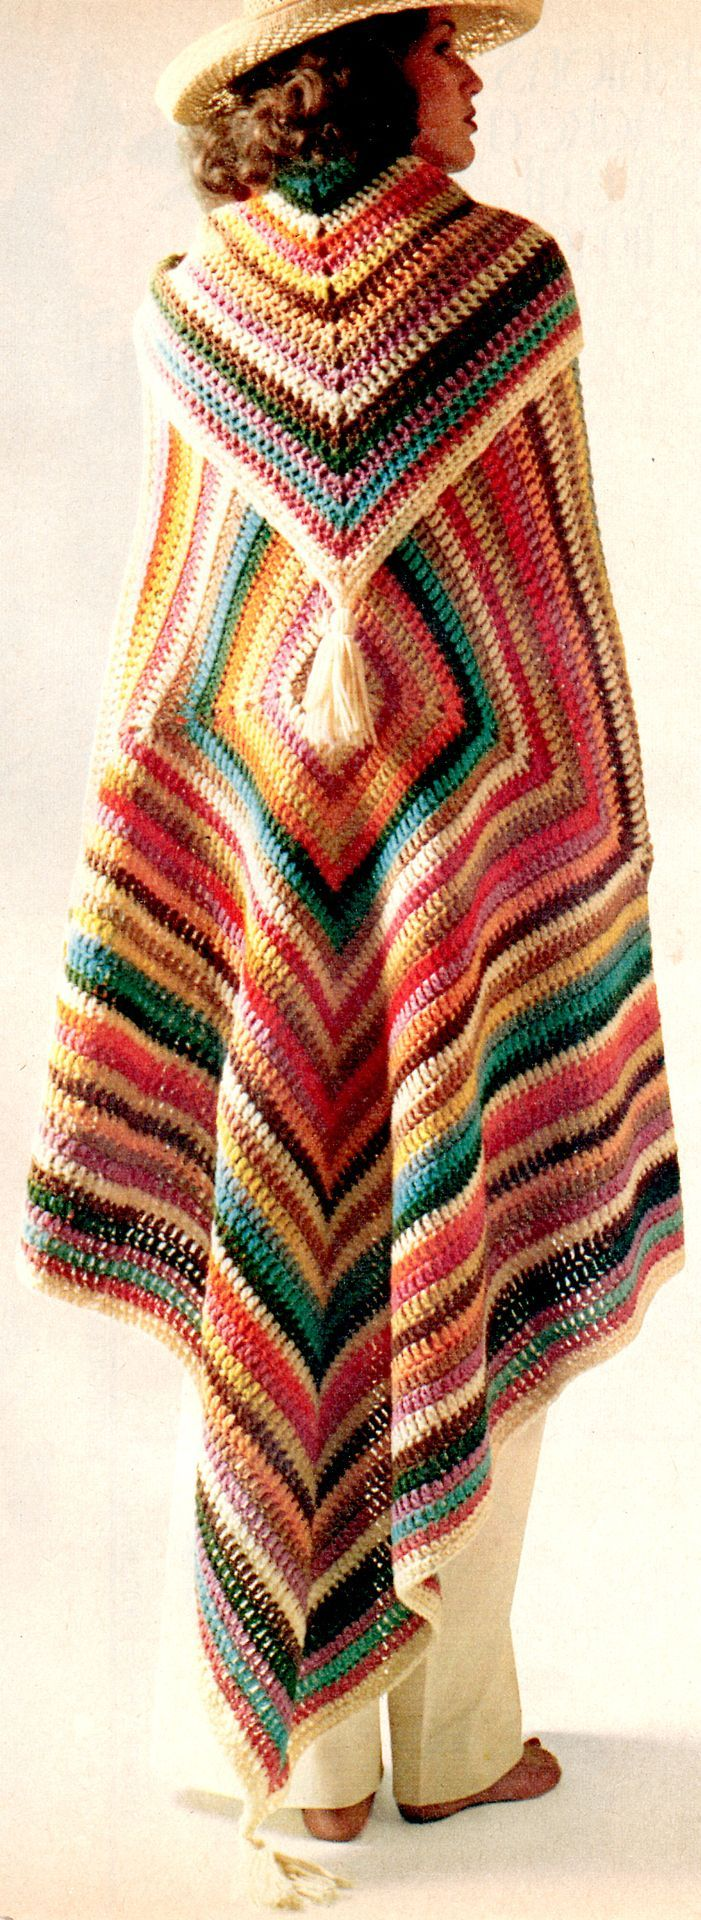 Knitwear, 1970s--10 old school fashion trends we'd love to see make a comeback